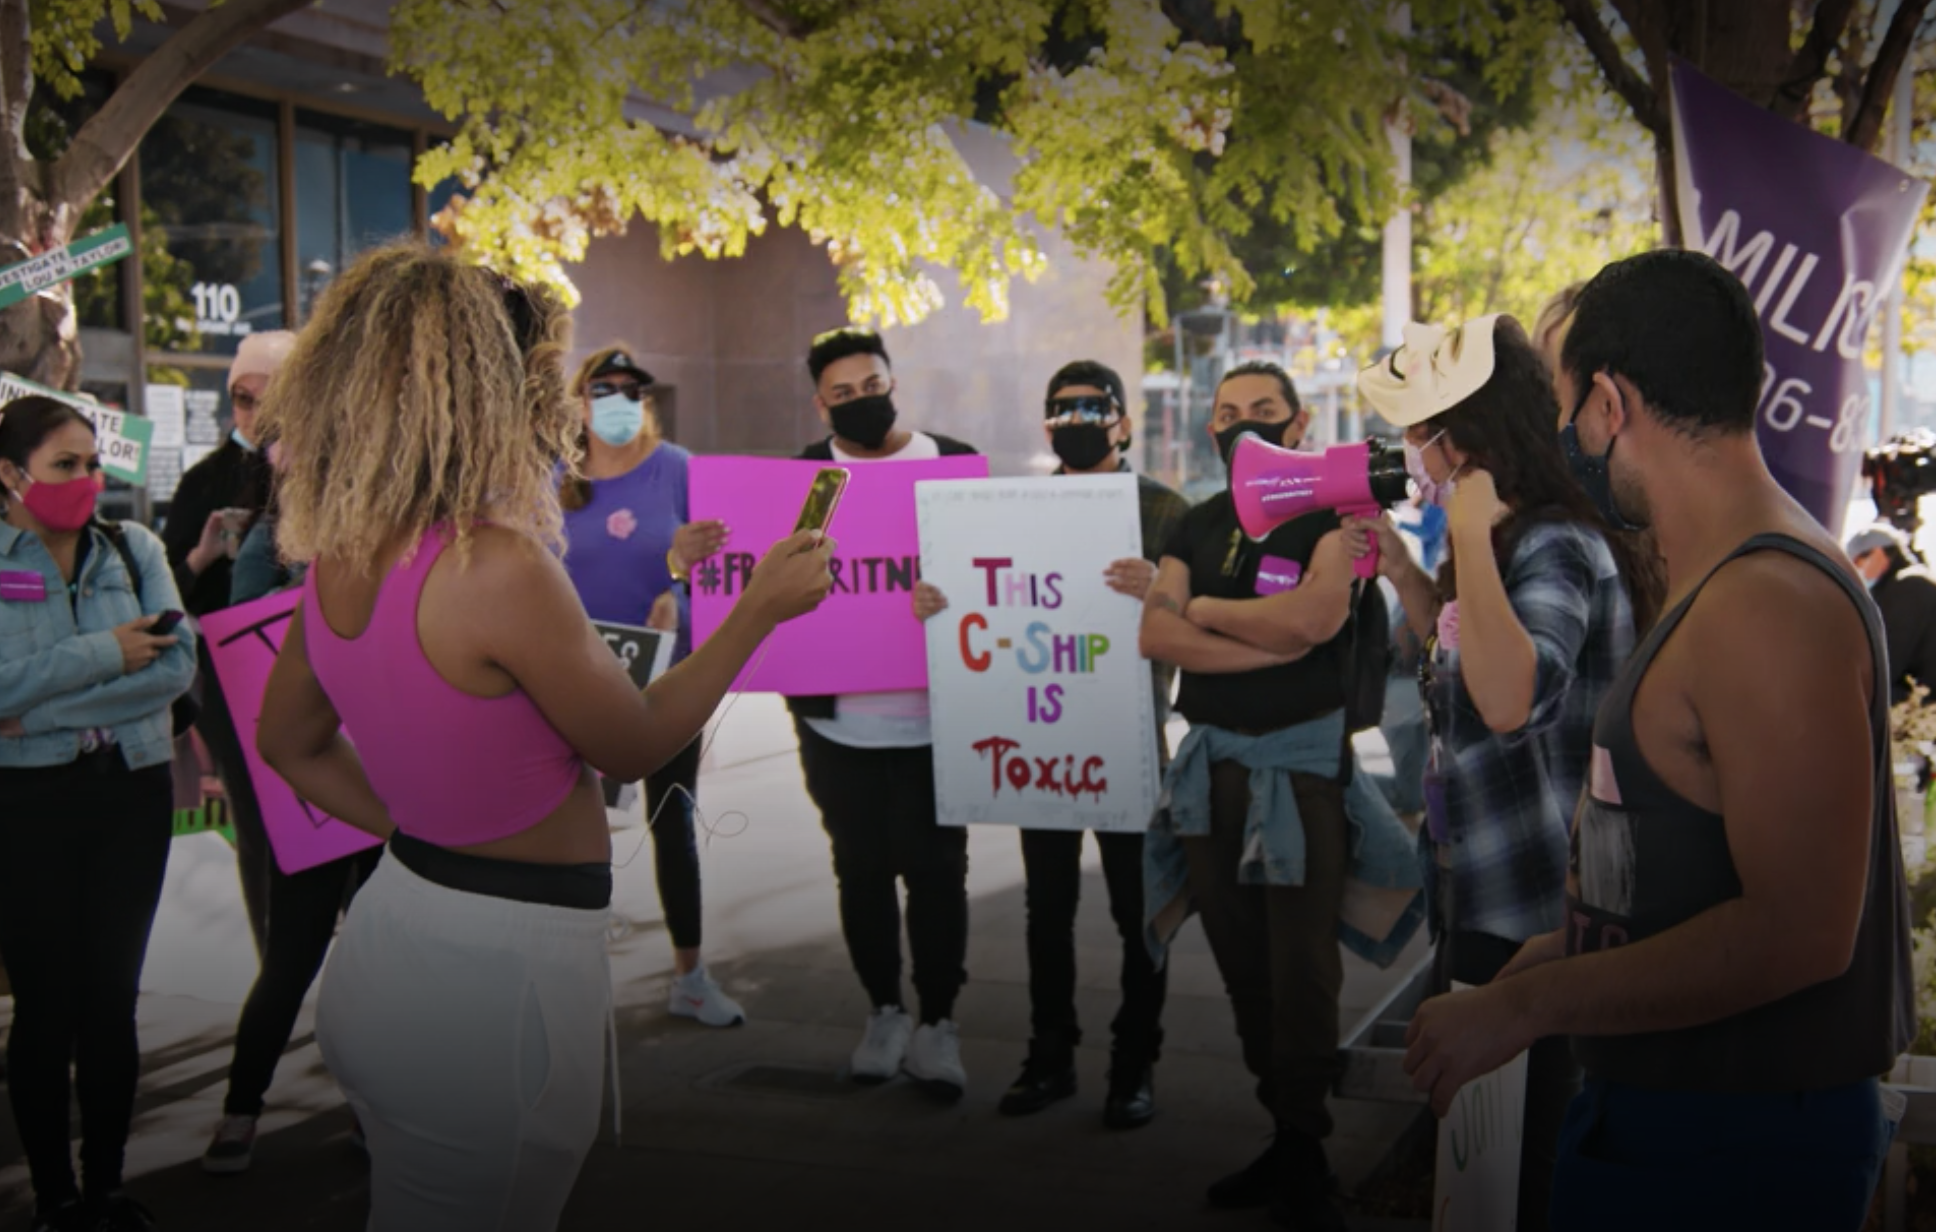 """Protestors at a """"Free Britney"""" event"""